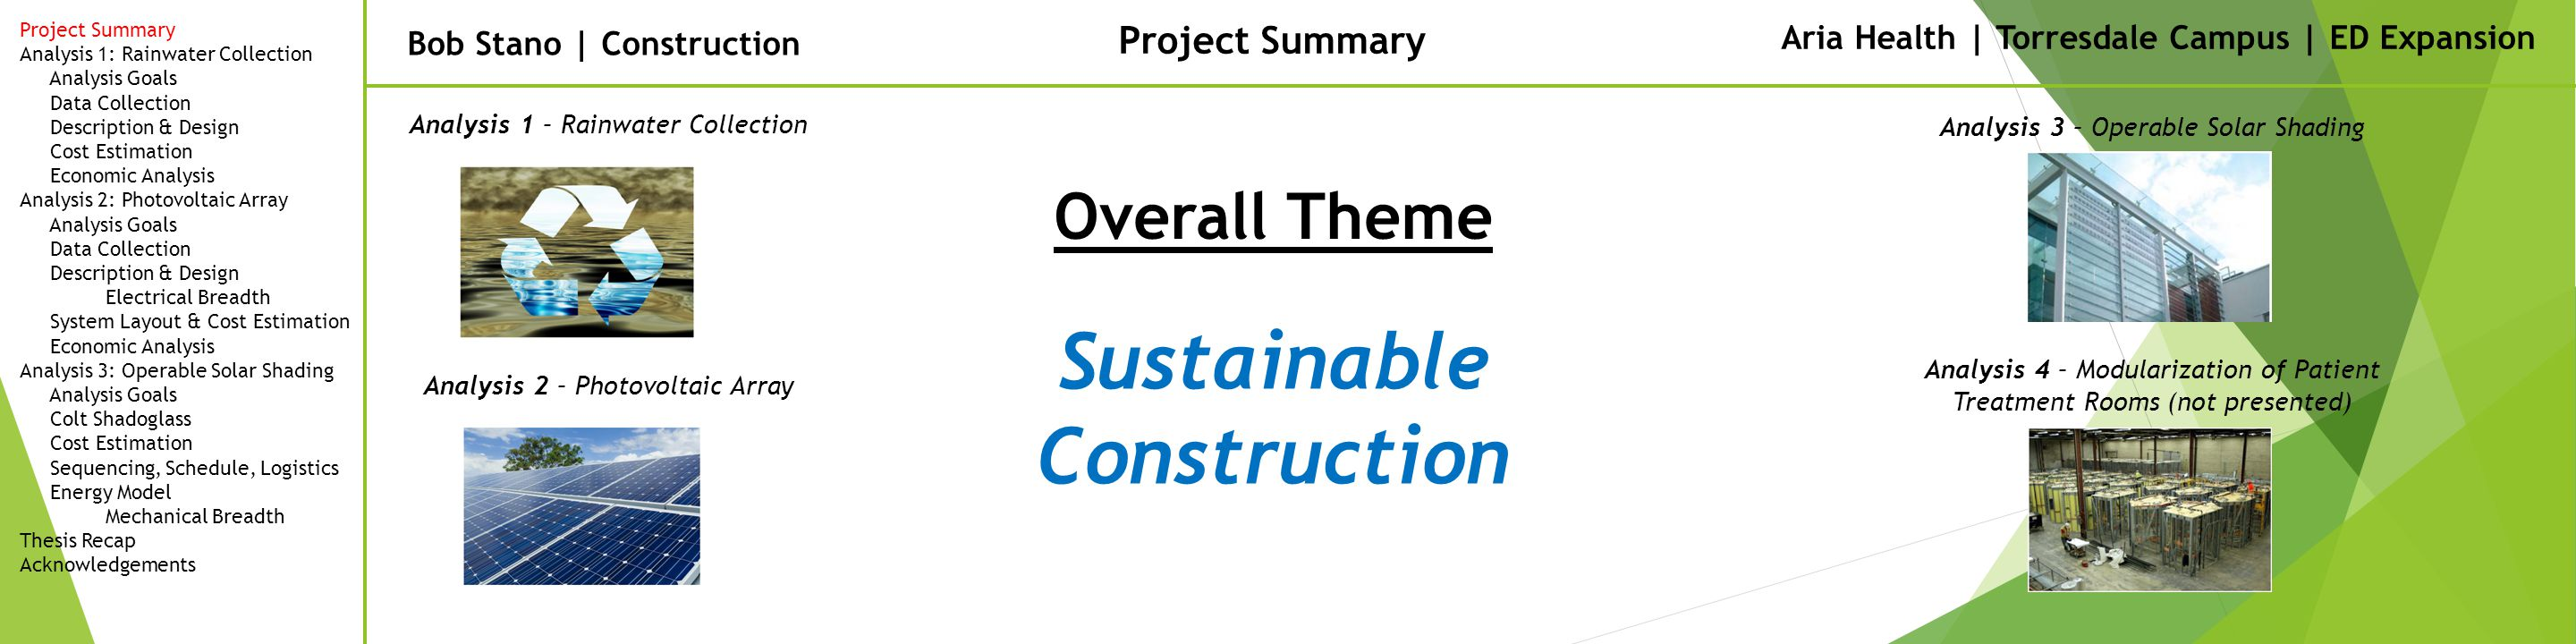 Bob Stano | Construction Project Summary Aria Health | Torresdale Campus | ED Expansion Project Summary Analysis 1: Rainwater Collection Analysis Goals Data Collection Description & Design Cost Estimation Economic Analysis Analysis 2: Photovoltaic Array Analysis Goals Data Collection Description & Design Electrical Breadth System Layout & Cost Estimation Economic Analysis Analysis 3: Operable Solar Shading Analysis Goals Colt Shadoglass Cost Estimation Sequencing, Schedule, Logistics Energy Model Mechanical Breadth Thesis Recap Acknowledgements Overall Theme Analysis 1 – Rainwater Collection Analysis 2 – Photovoltaic Array Analysis 3 – Operable Solar Shading Analysis 4 – Modularization of Patient Treatment Rooms (not presented) Sustainable Construction